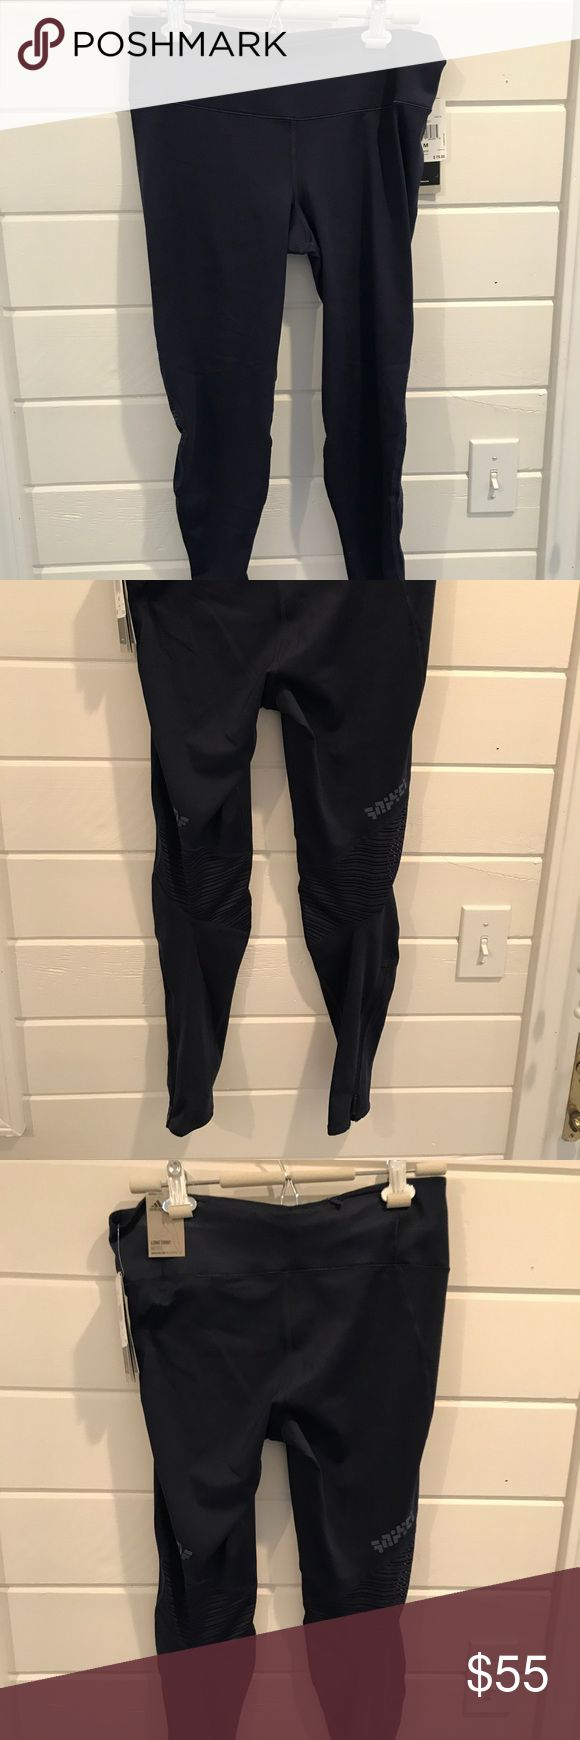 Adidas Supernova 7/8 tight in deep blue, size L Brand new with tags adidas Pants Leggings